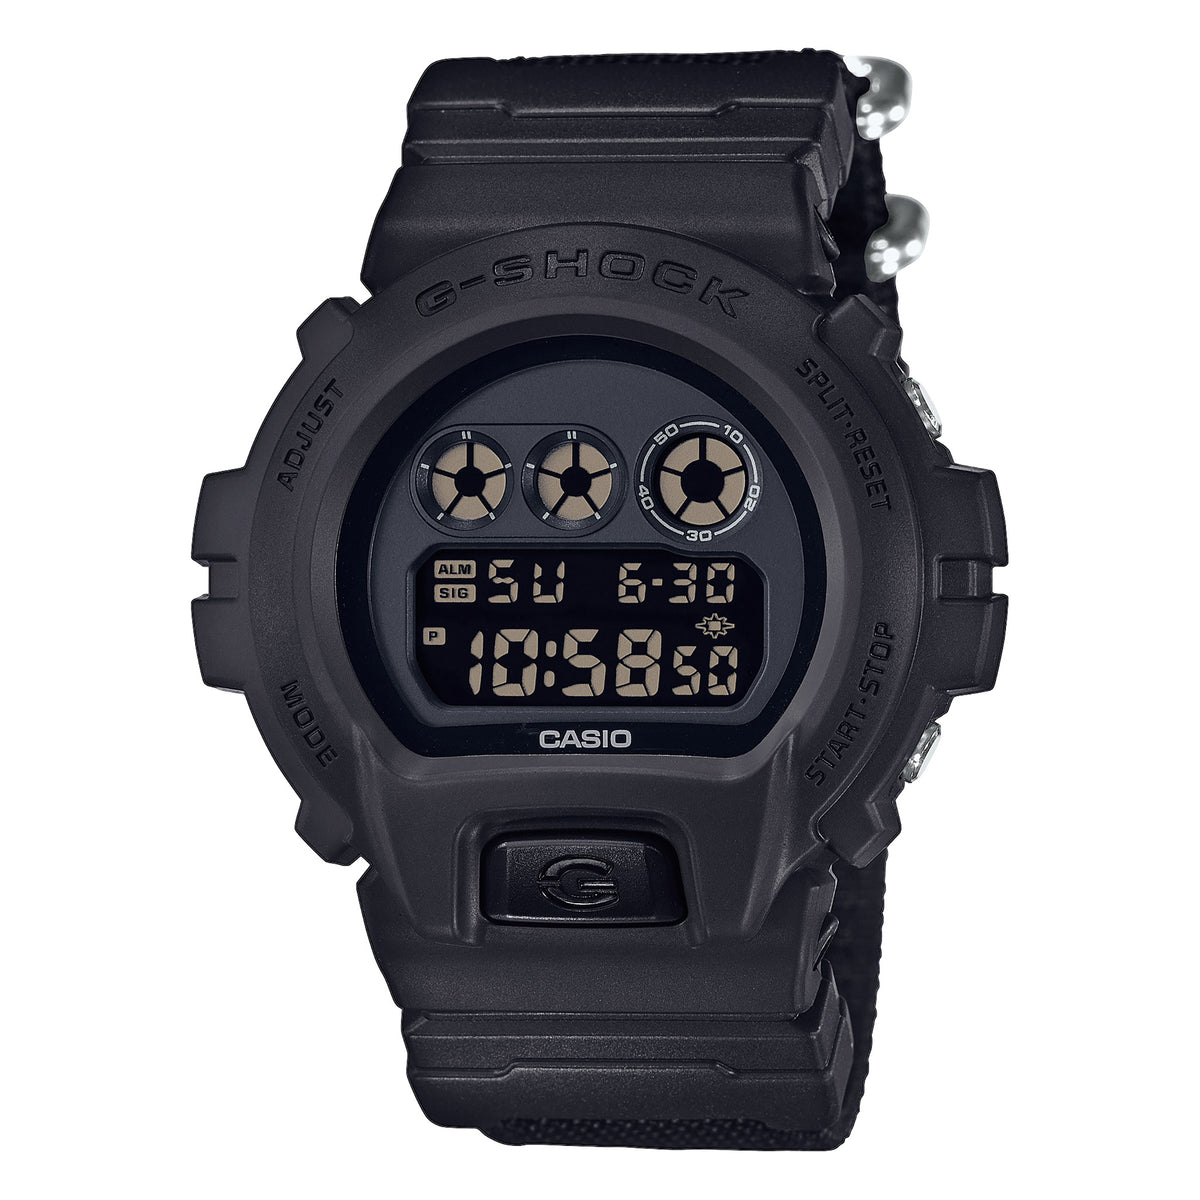 G-Shock: DW-6900BBN-1 Watch - Black / Nylon Band